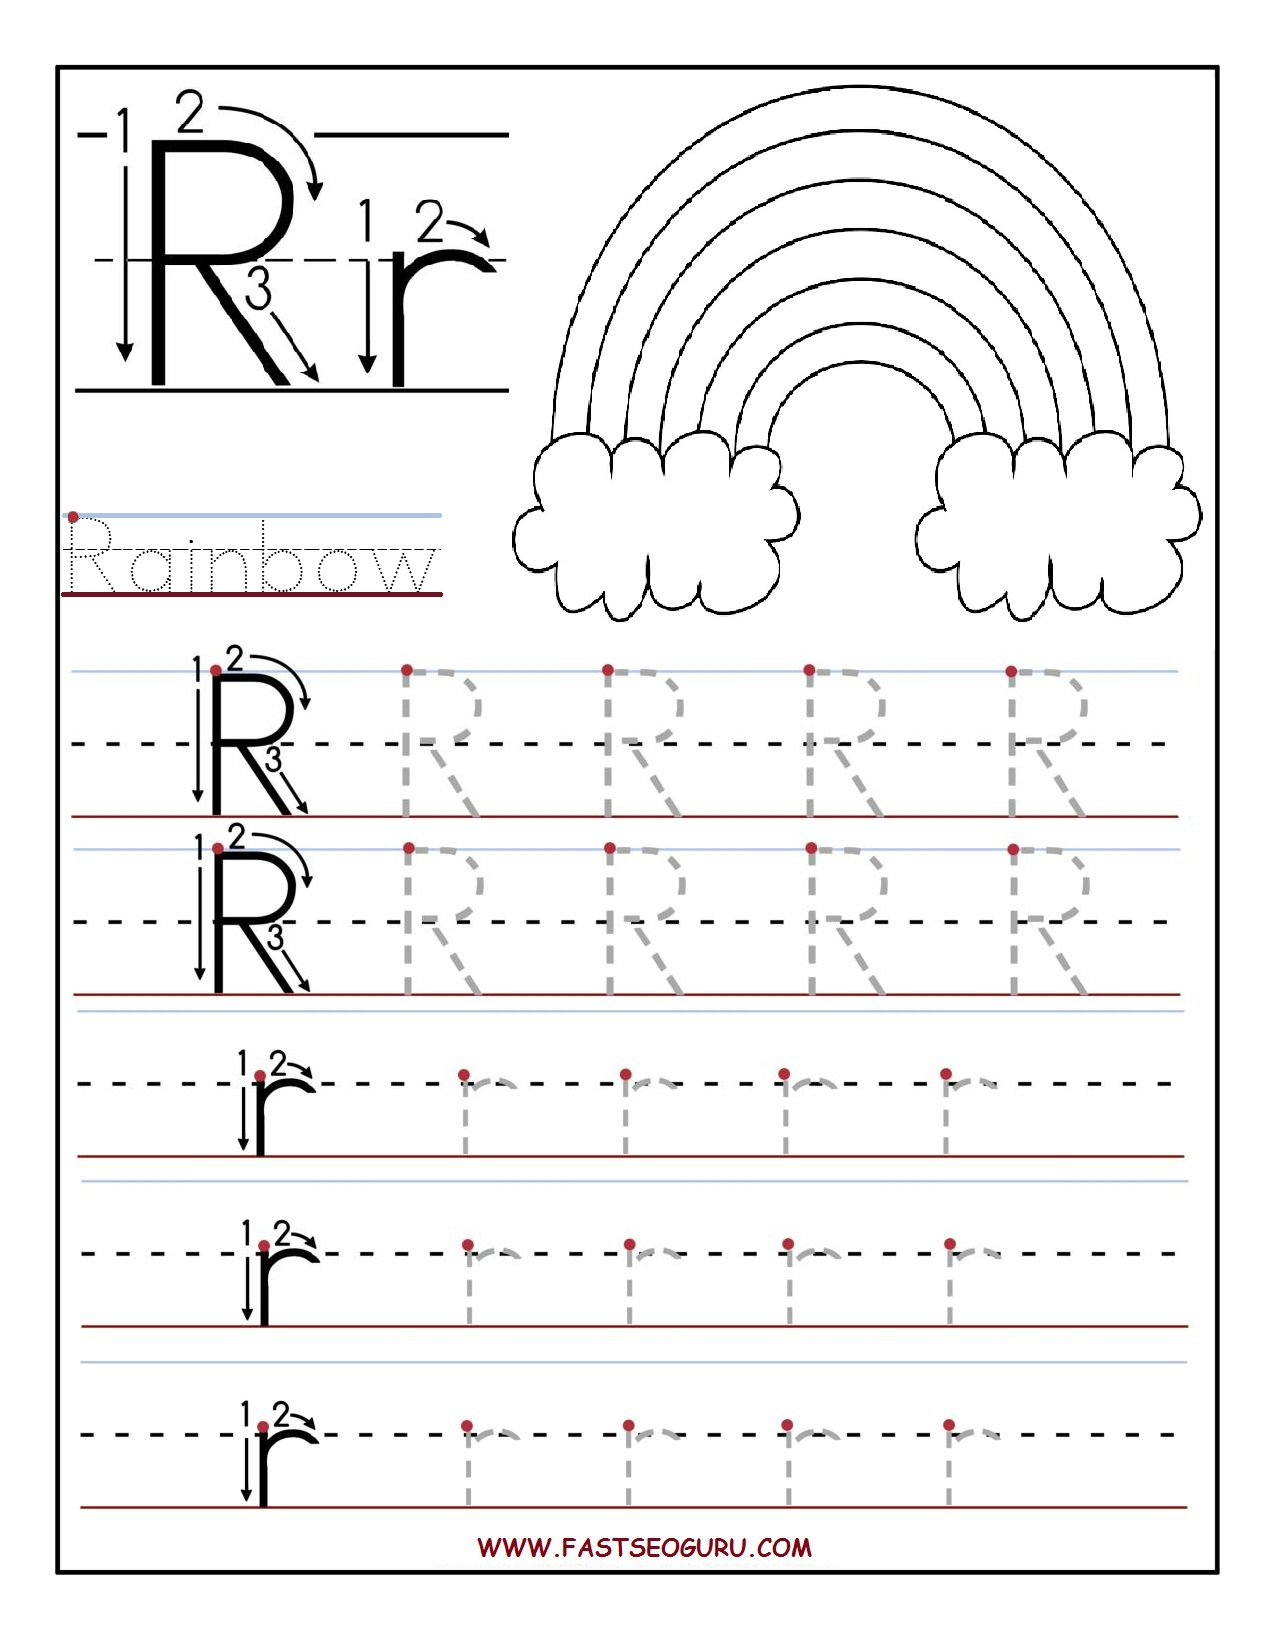 Printable letter R tracing worksheets